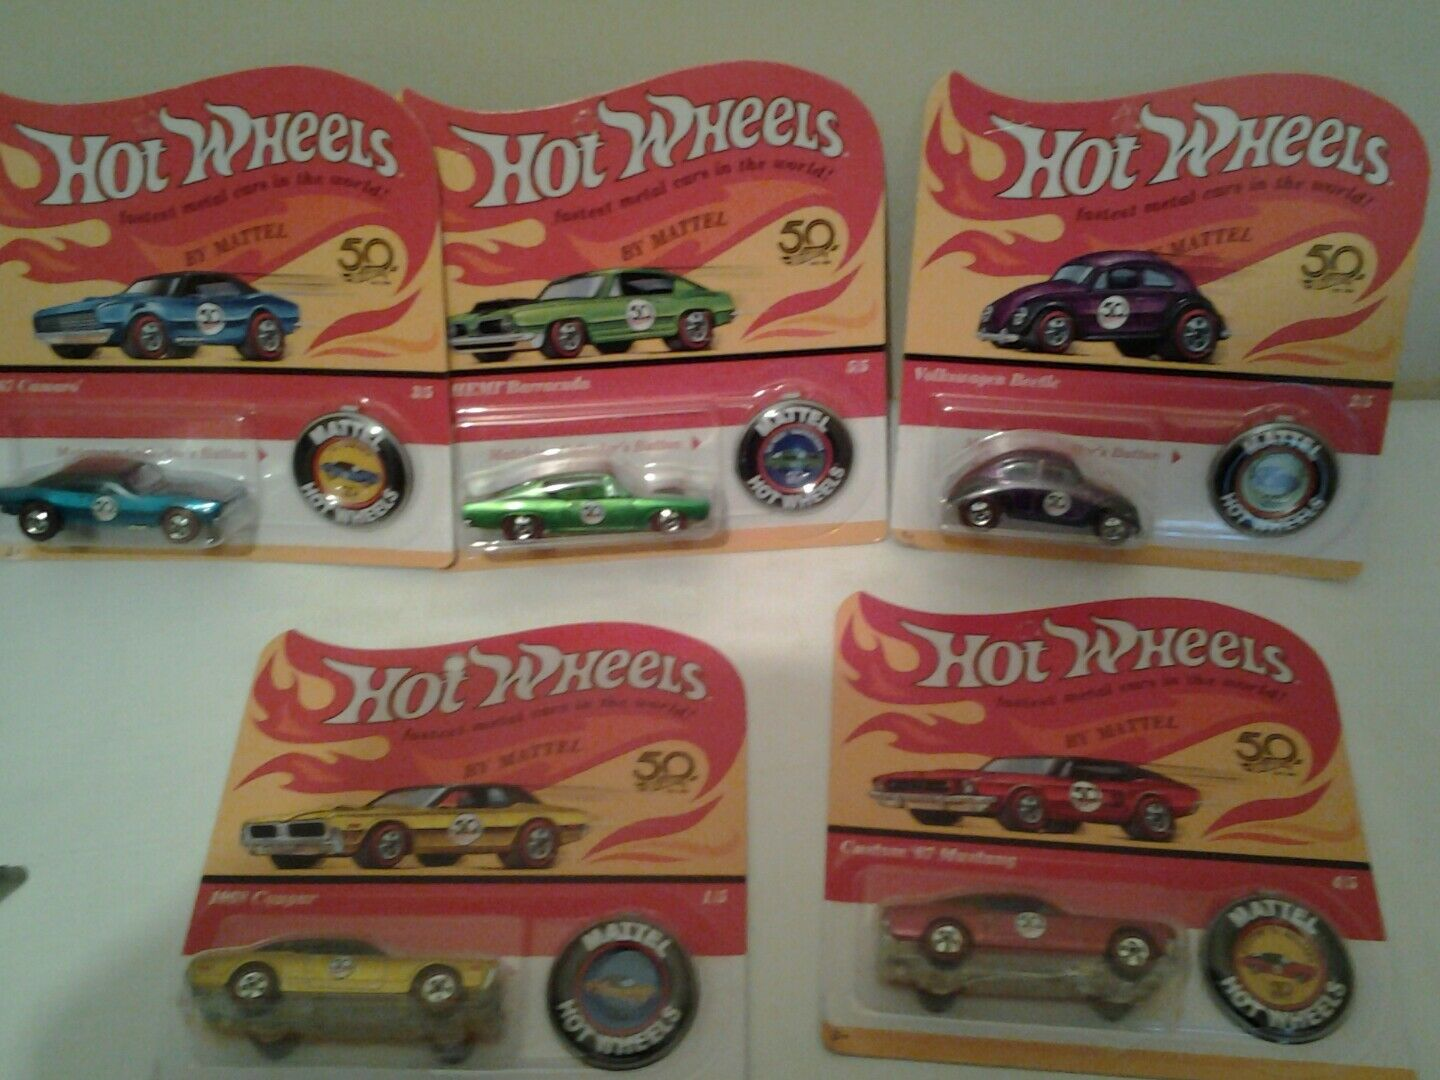 Hot wheels 50th anniversary redline set 5